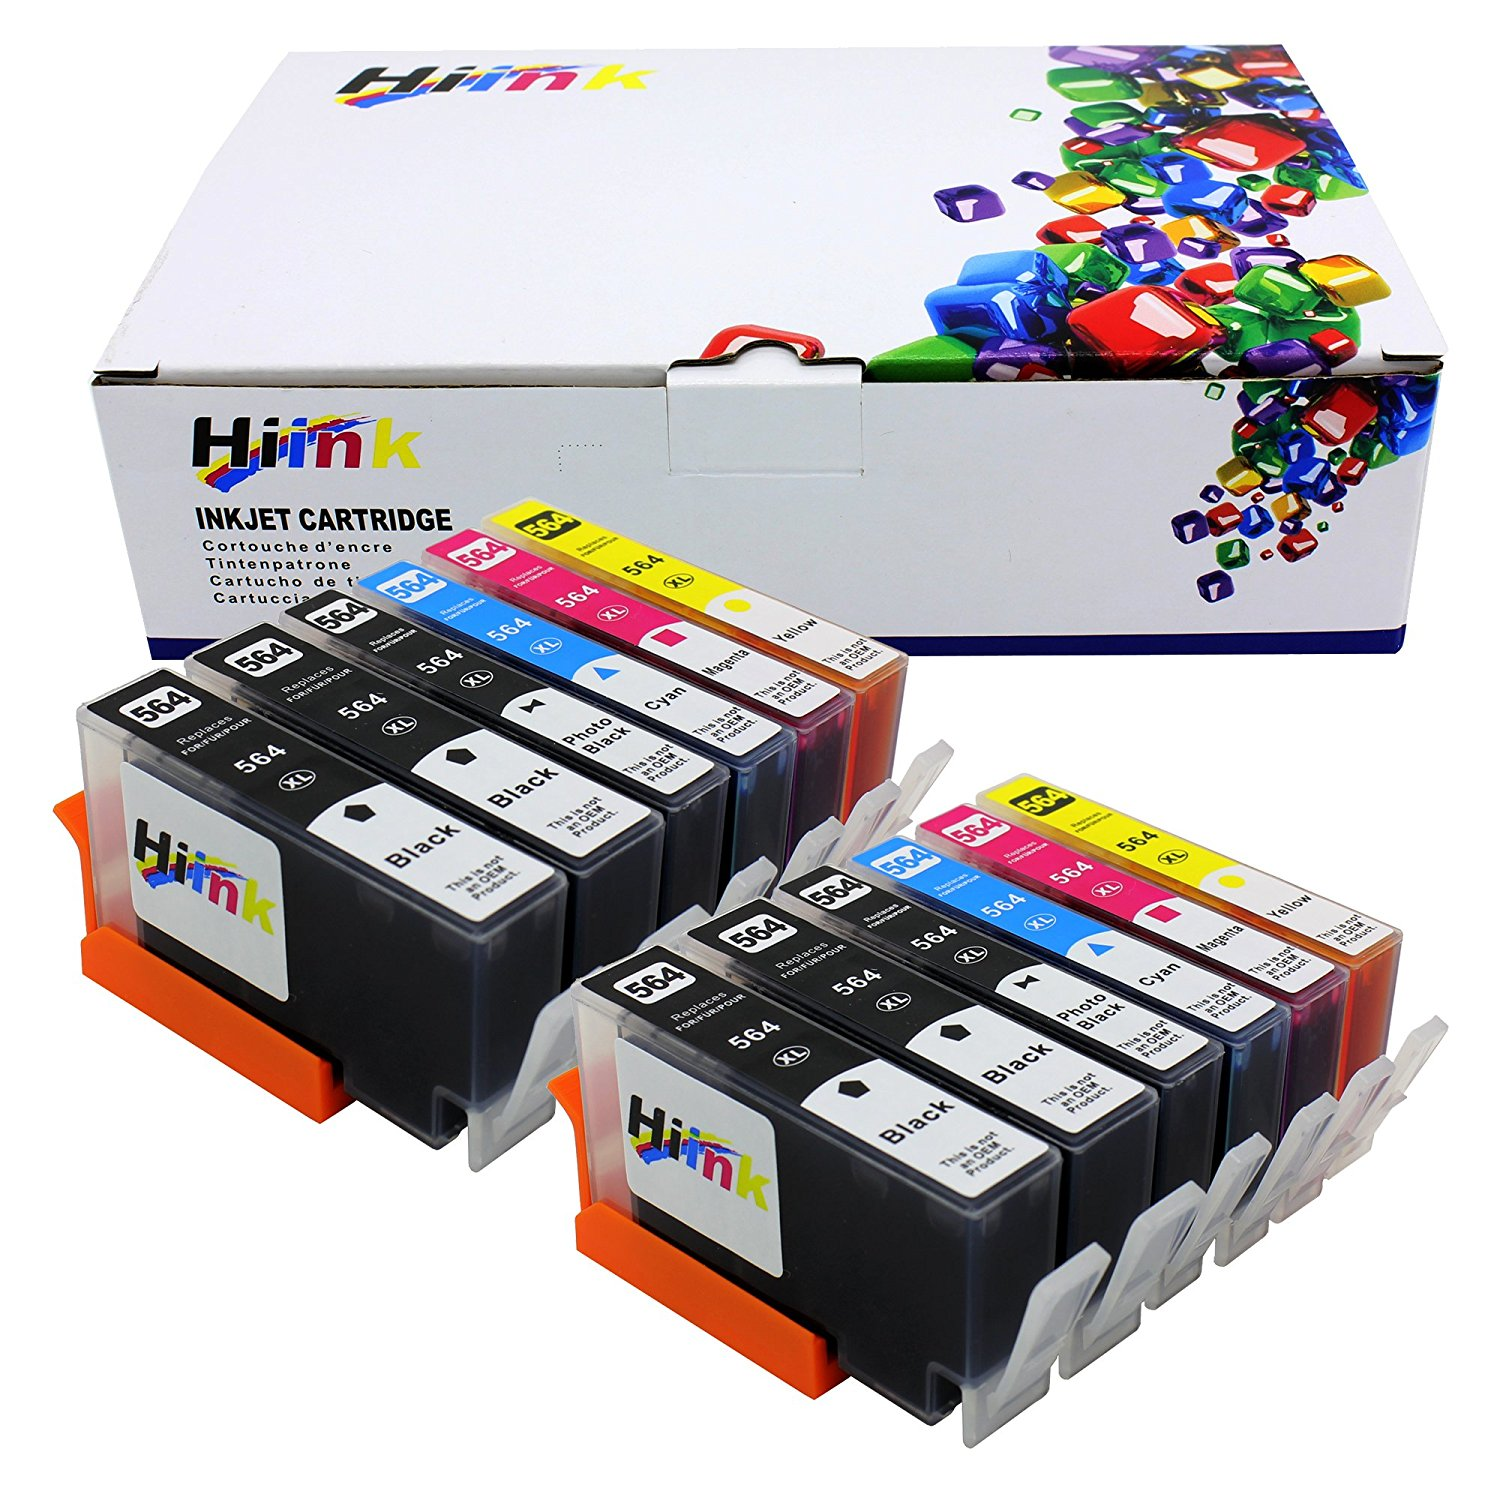 HI INK 12 Pack 564XL Ink Cartridge Replacement for HP 564XL Used in HP Photosmart 5520 6520 7520 5510 6510 7510 7525 B8550 C6380 D7560 Premium C309A C410 Officejet 4620 Deskjet 3520